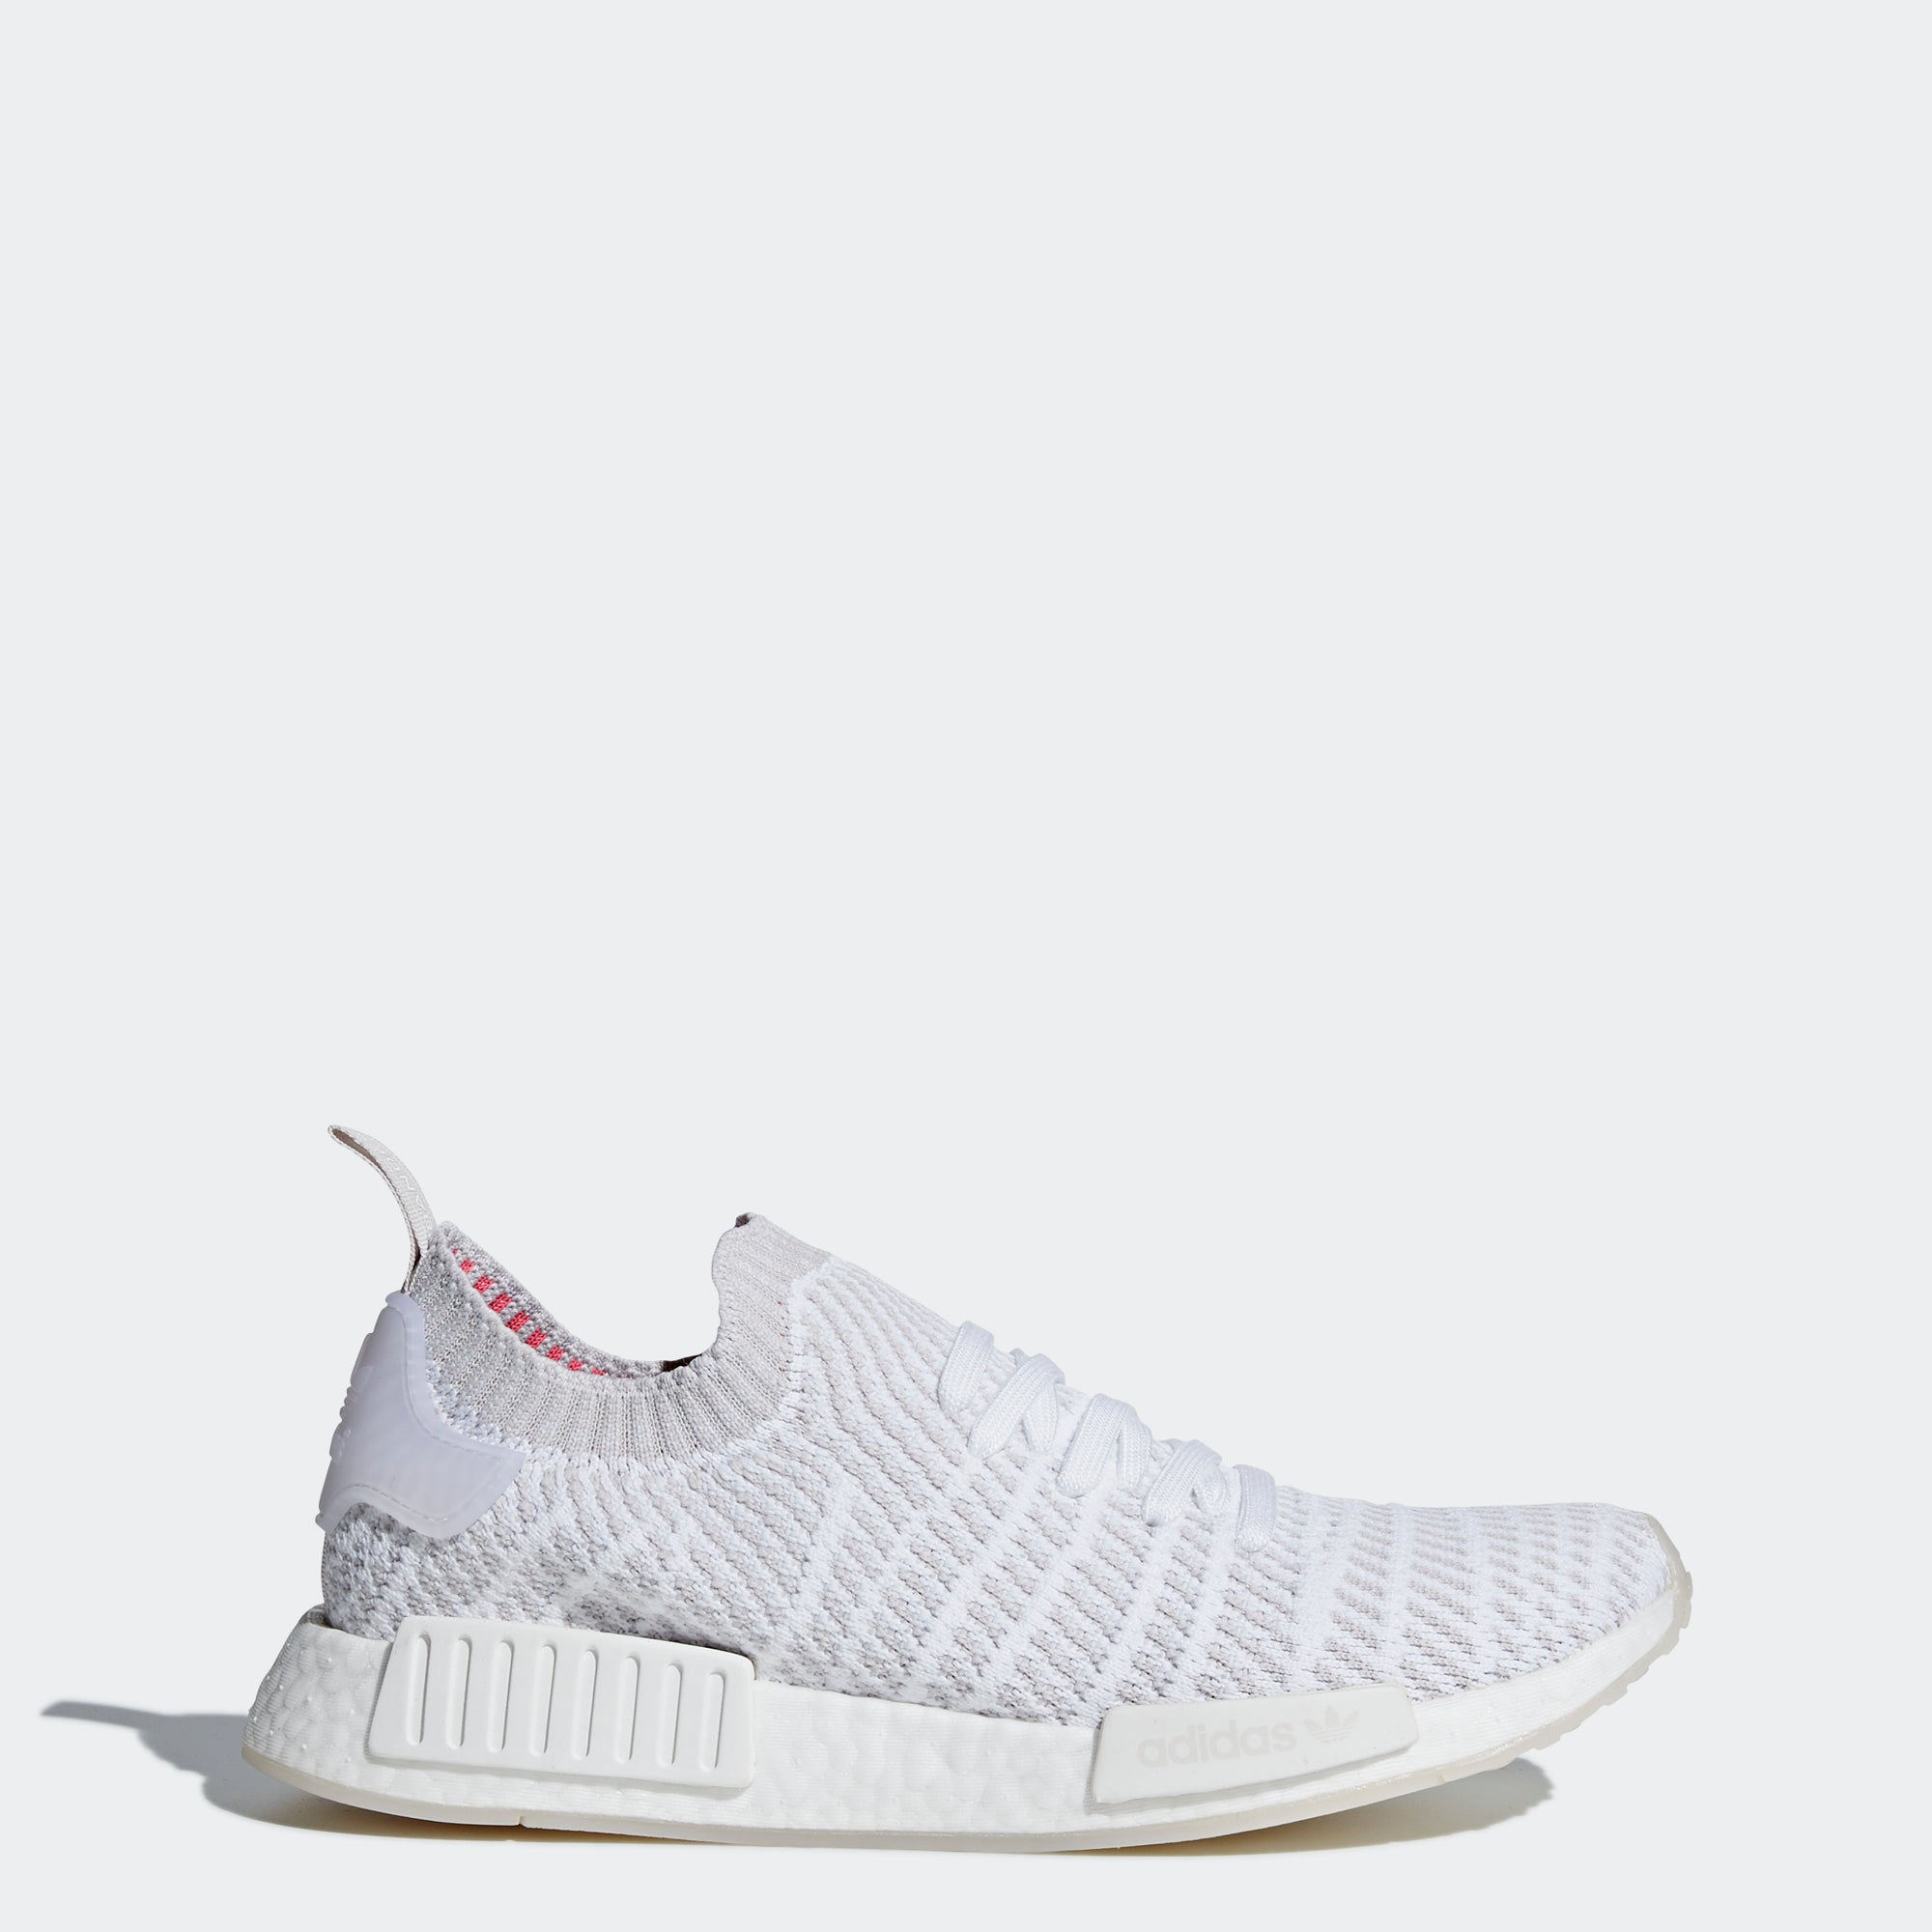 cheap for discount e7f42 f9111 Men s adidas Originals NMD R1 STLT Primeknit Shoes Cloud White and Gray